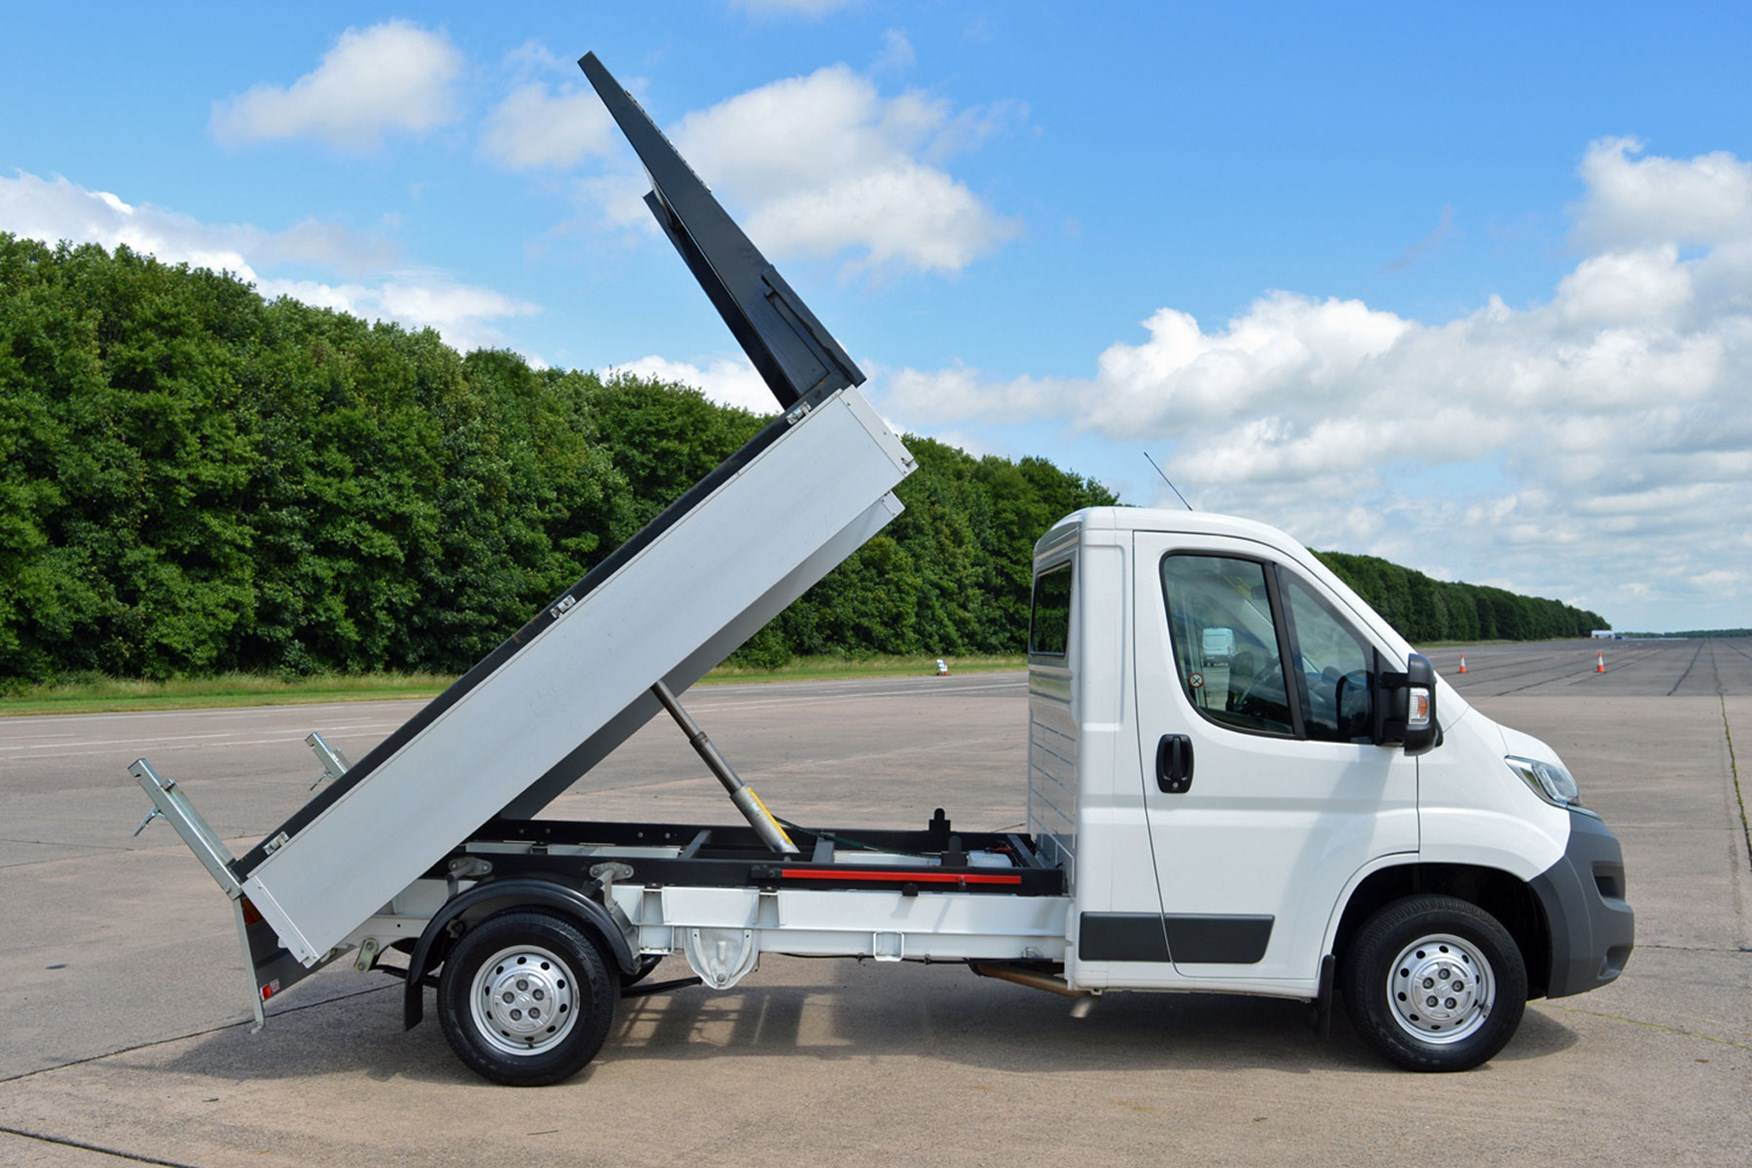 Citroen Relay 2.2 HDi Tipper review - side view, tipper-bed raised